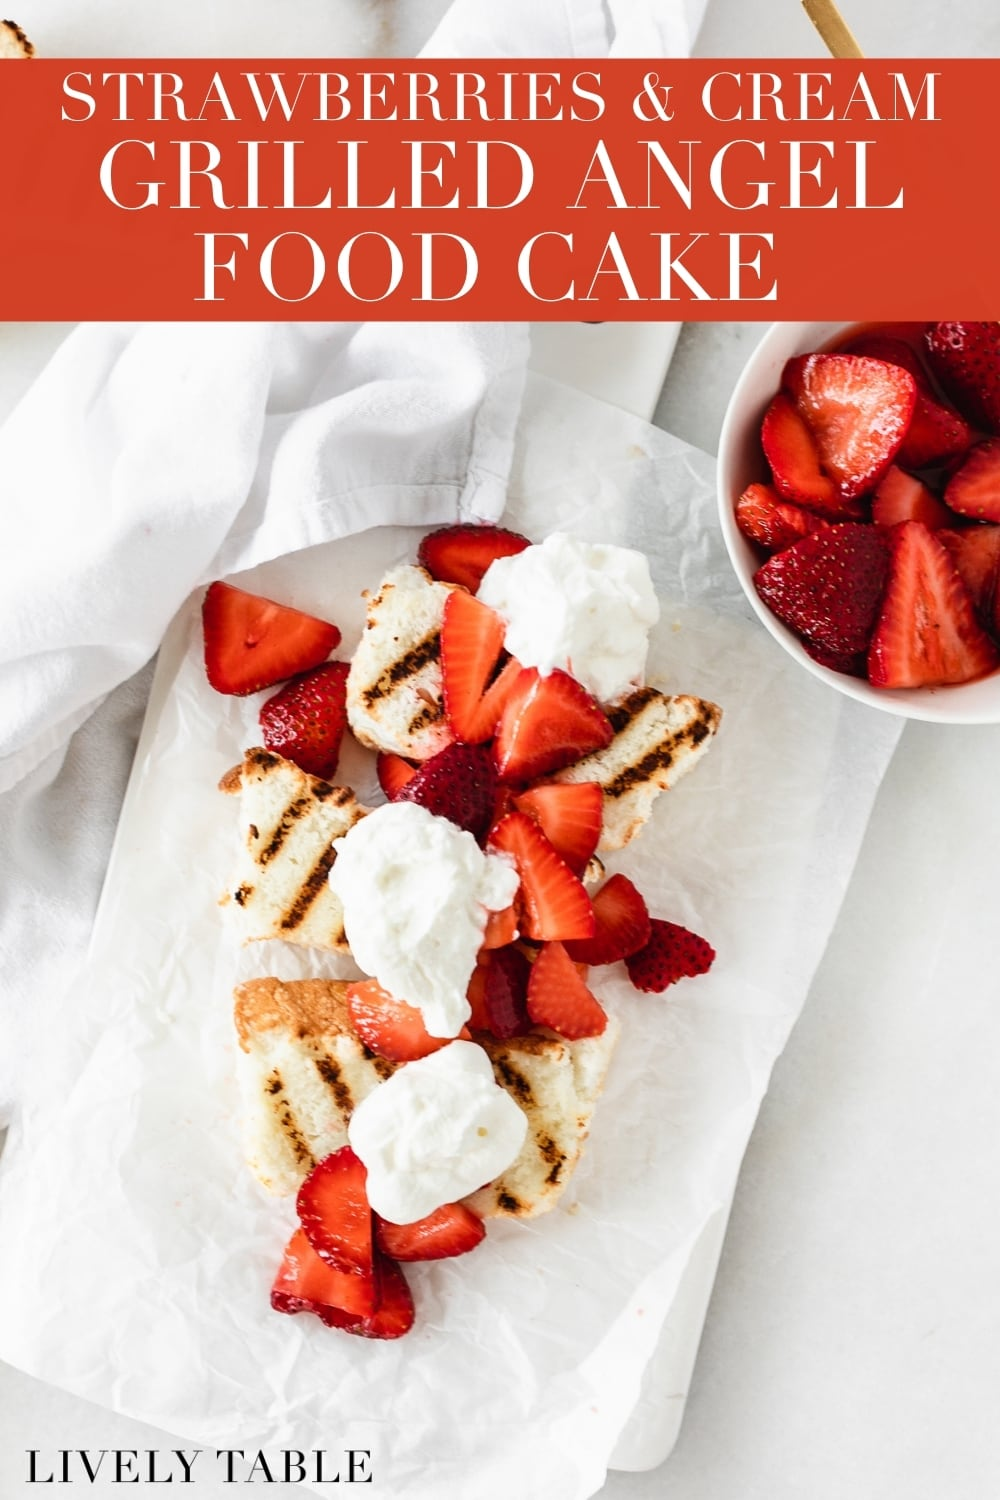 Fire up the grill for Strawberries and Cream Grilled Angel Food Cake! Light and fluffy angel food cake caramelized on the grill and is topped off with macerated strawberries and fresh whipped cream in this delicious summer dessert! #nutfree #grilling #easyrecipes #strawberries #strawberriesandcream #angelfoodcake #cake #dessert